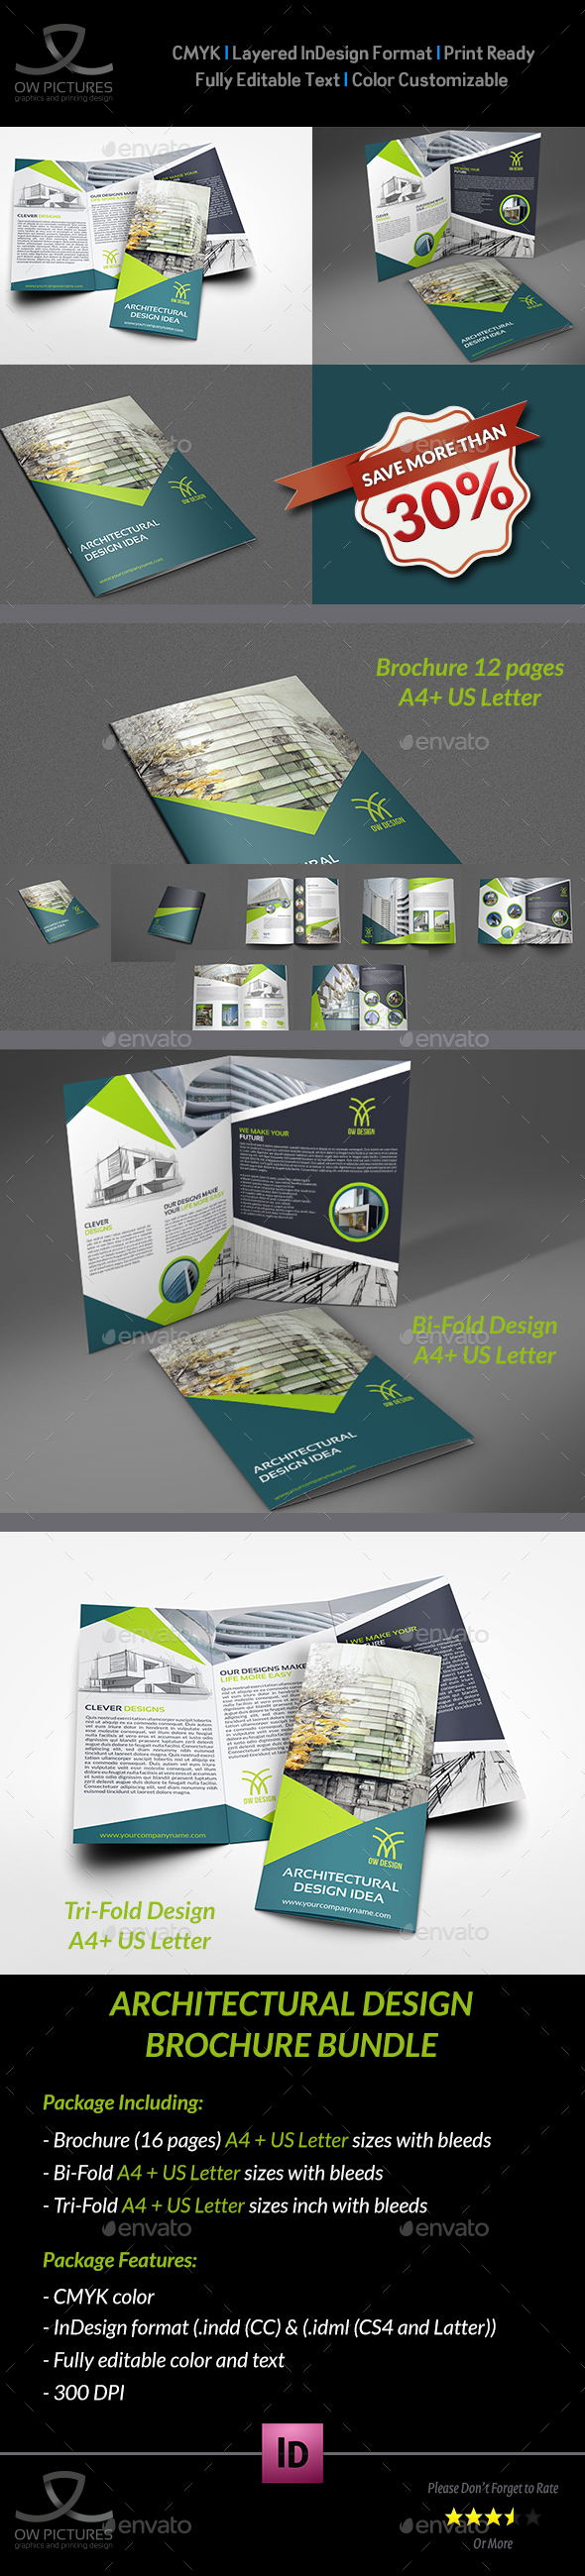 Architectural Design Brochure Bundle Template Brochures Print Templates